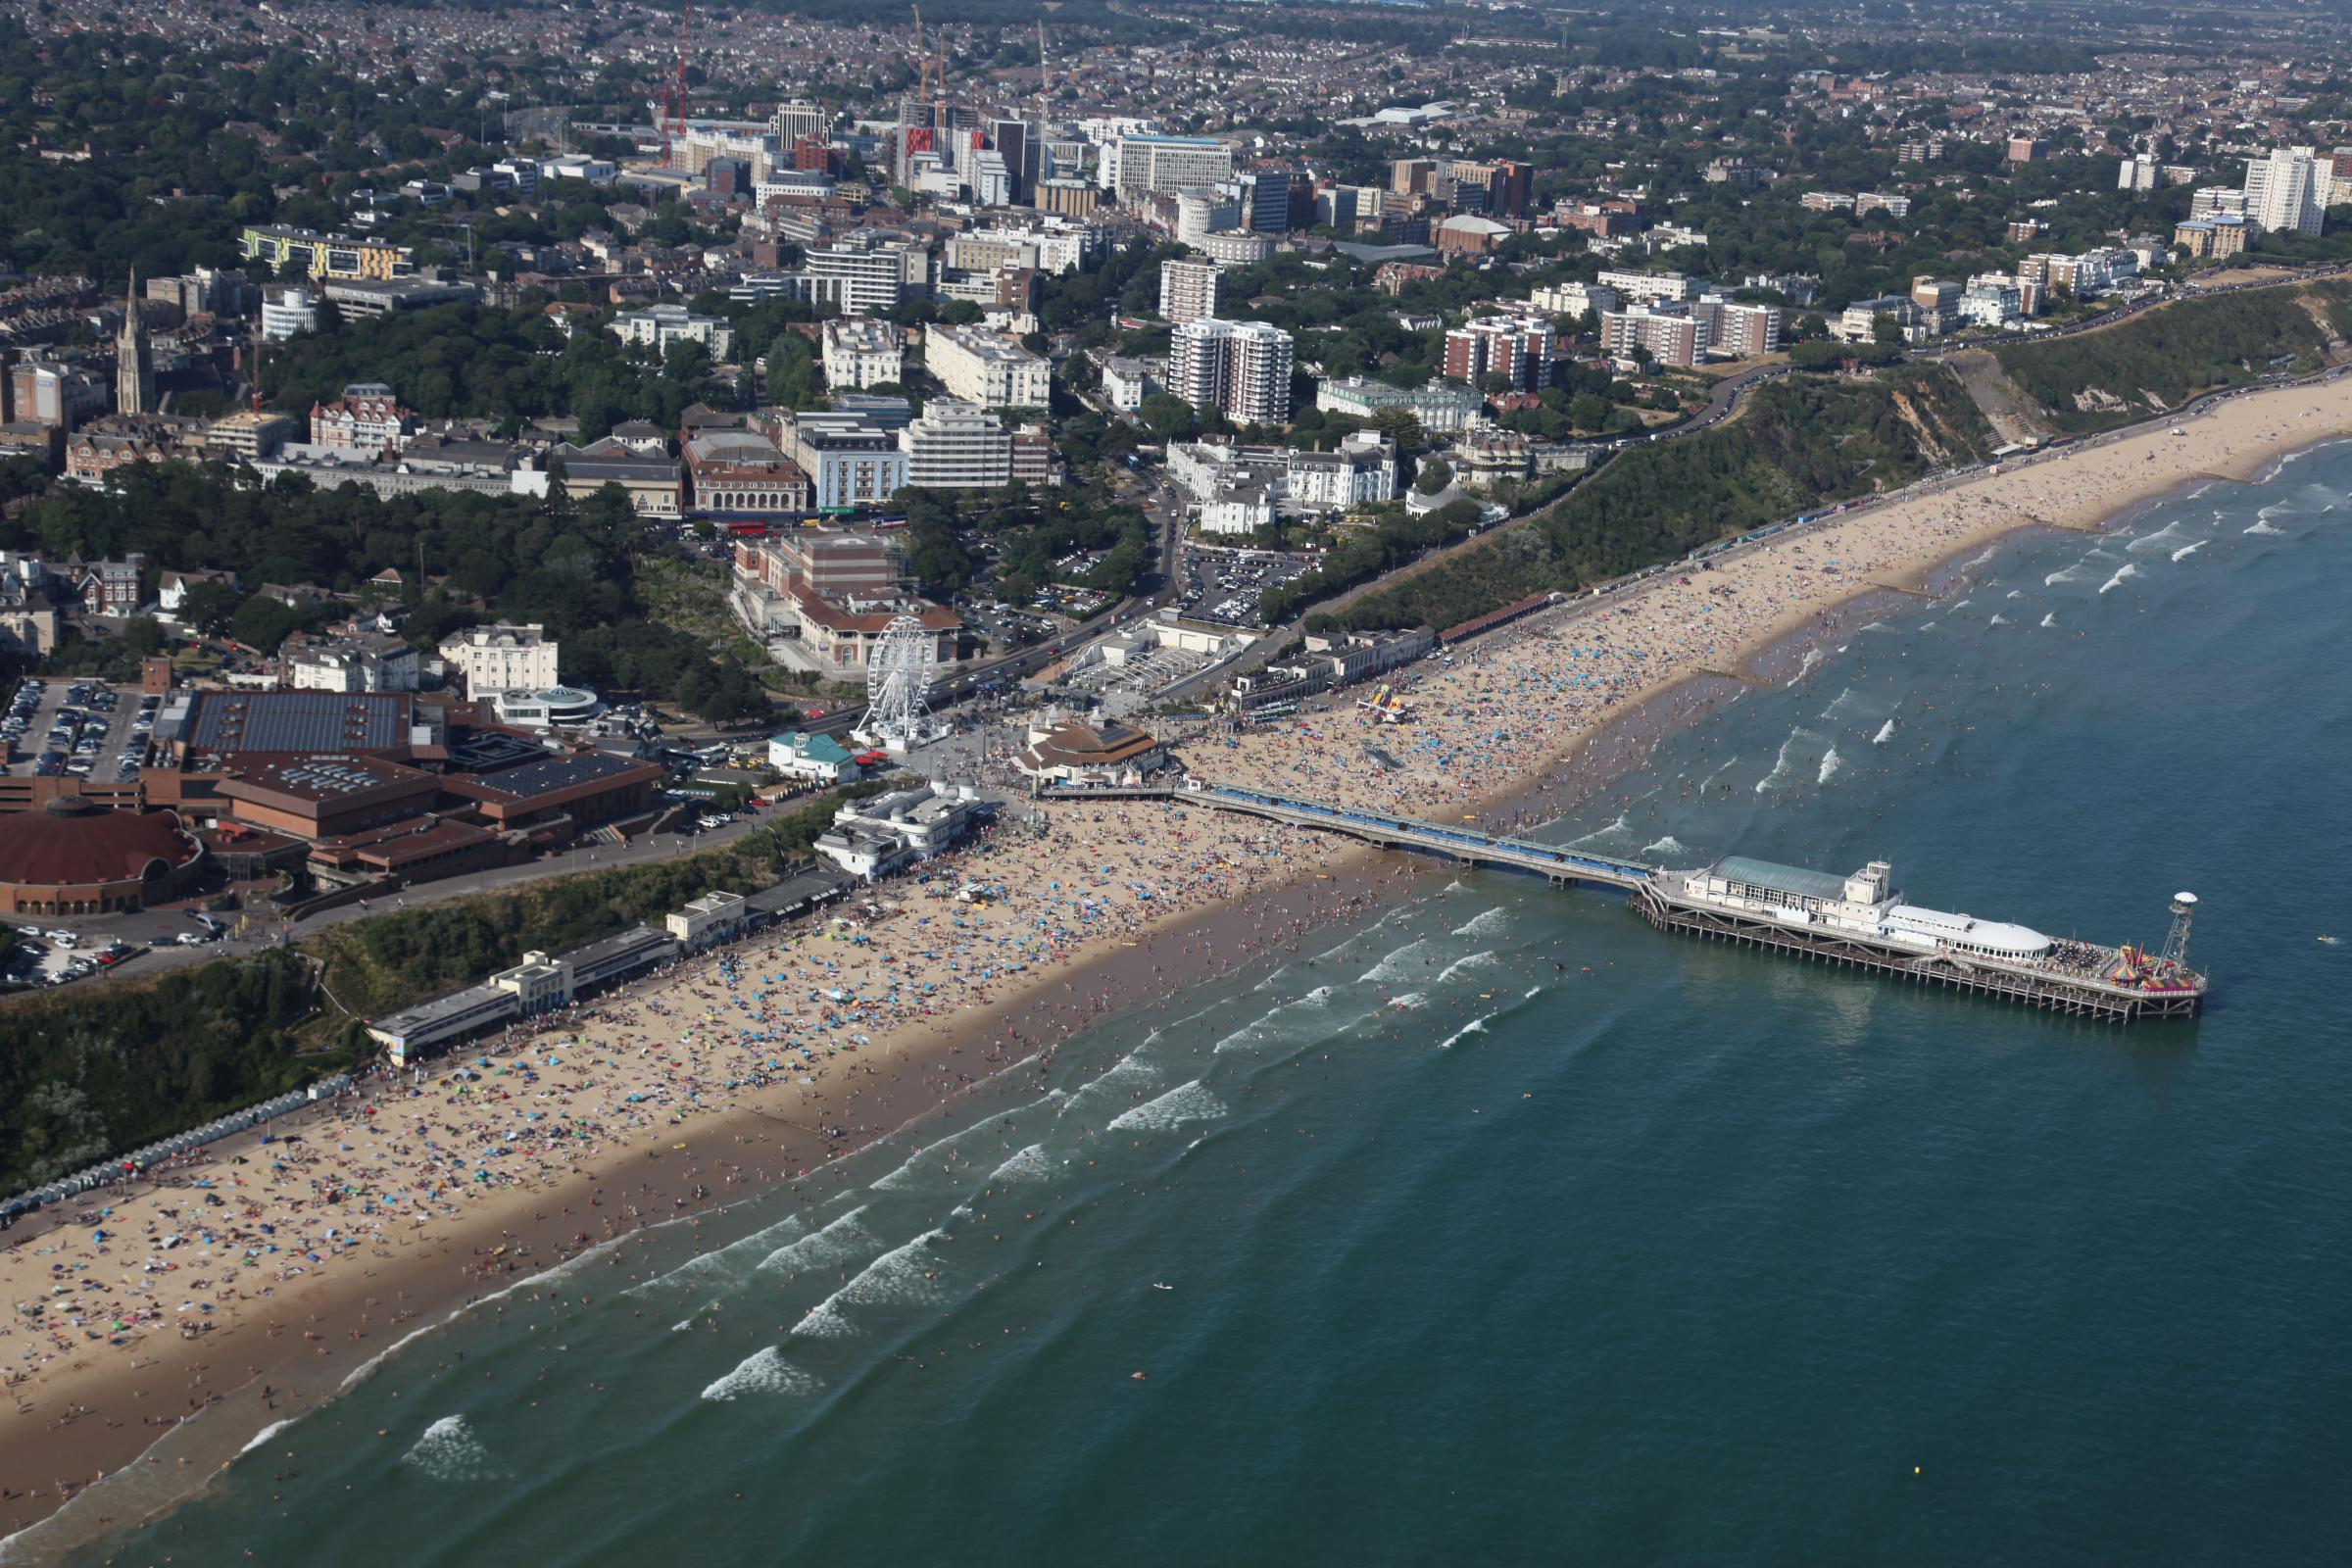 Bournemouth Pier and beach. Picture by Gary Ellson of Bliss Aviation.